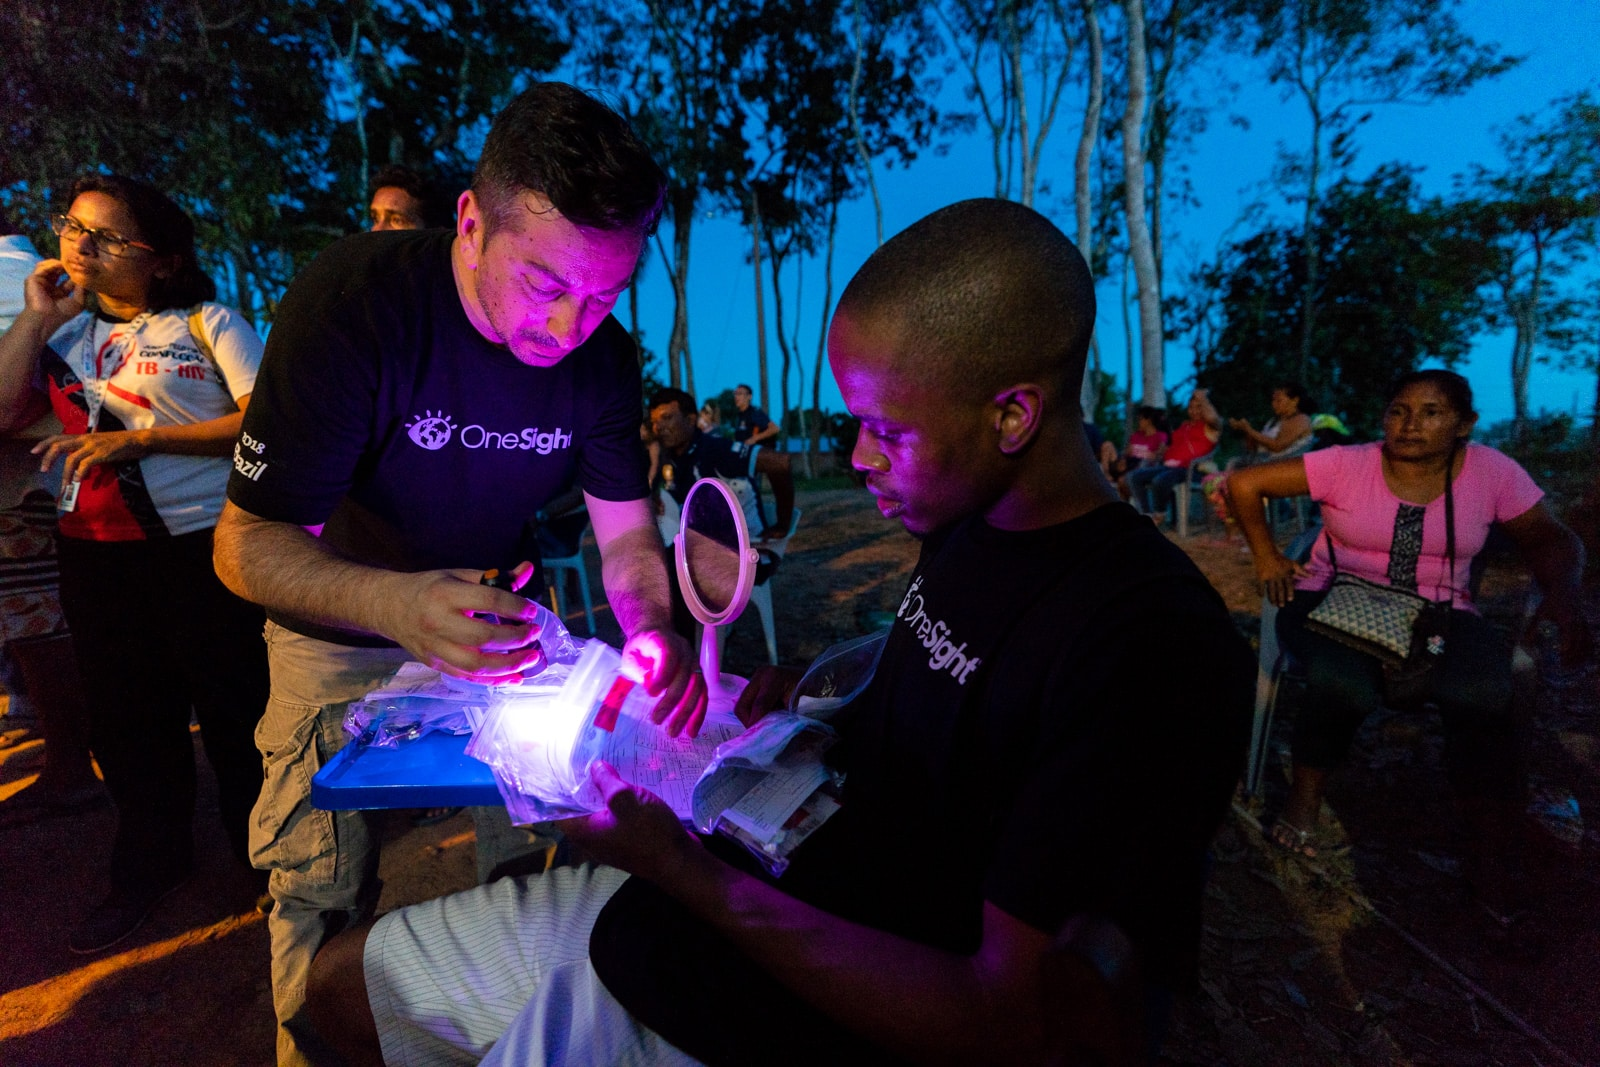 OneSight's mobile eye care clinic in the Brazilian Amazon - Volunteers sorting through glasses in the evening - Lost With Purpose travel blog